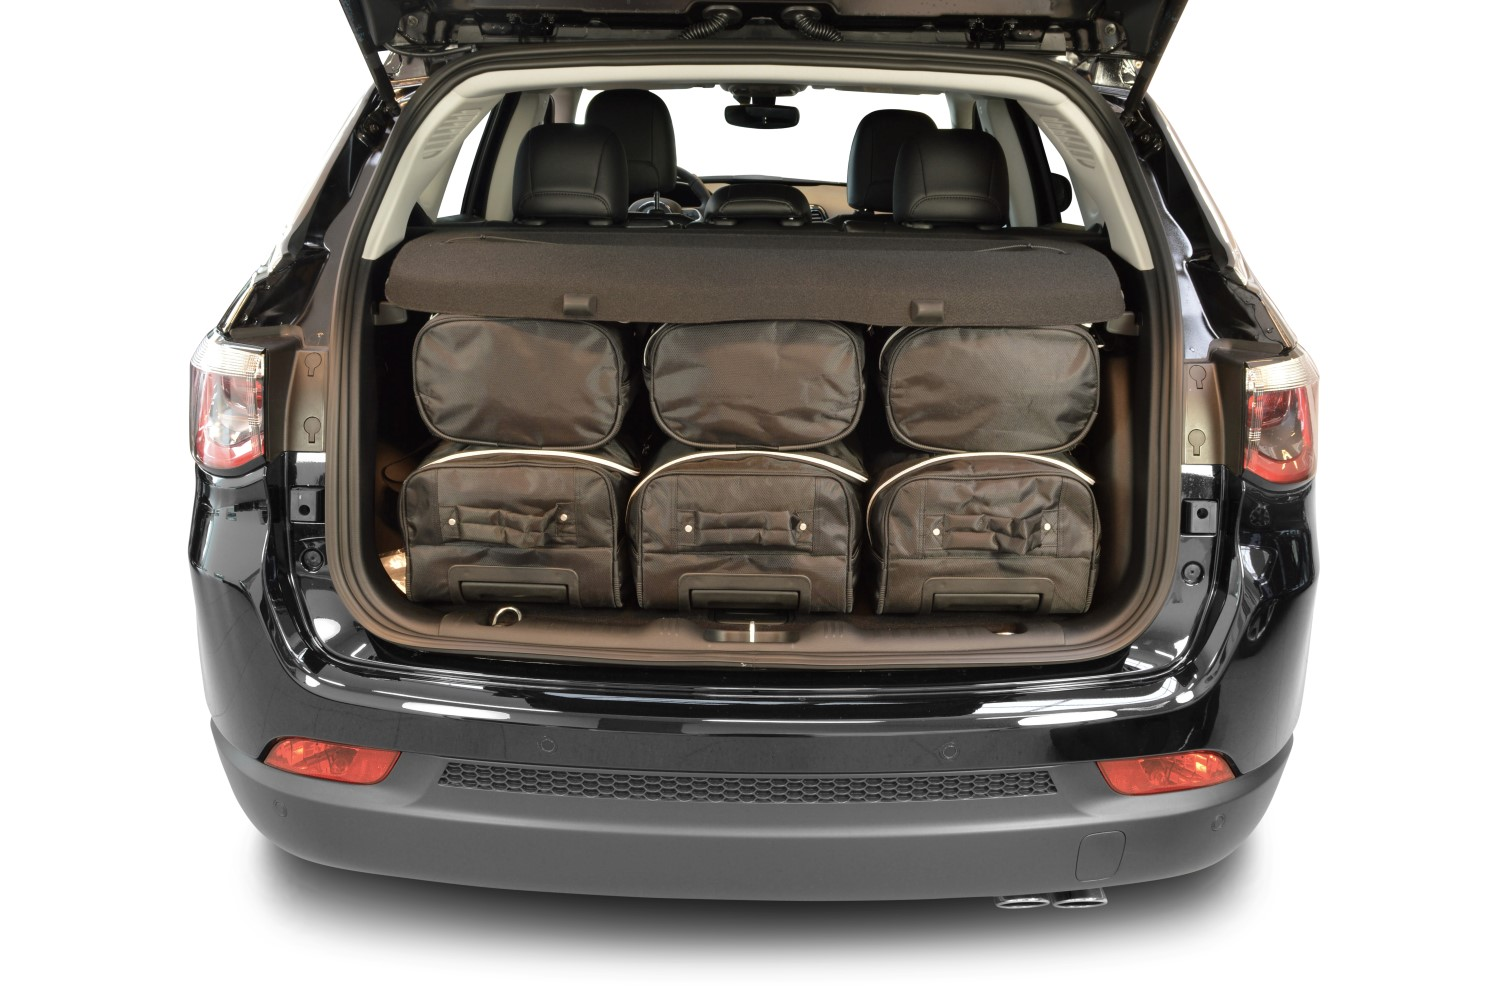 7880e58e5a Jeep Compass (MP) car travel bags | Car-Bags.com